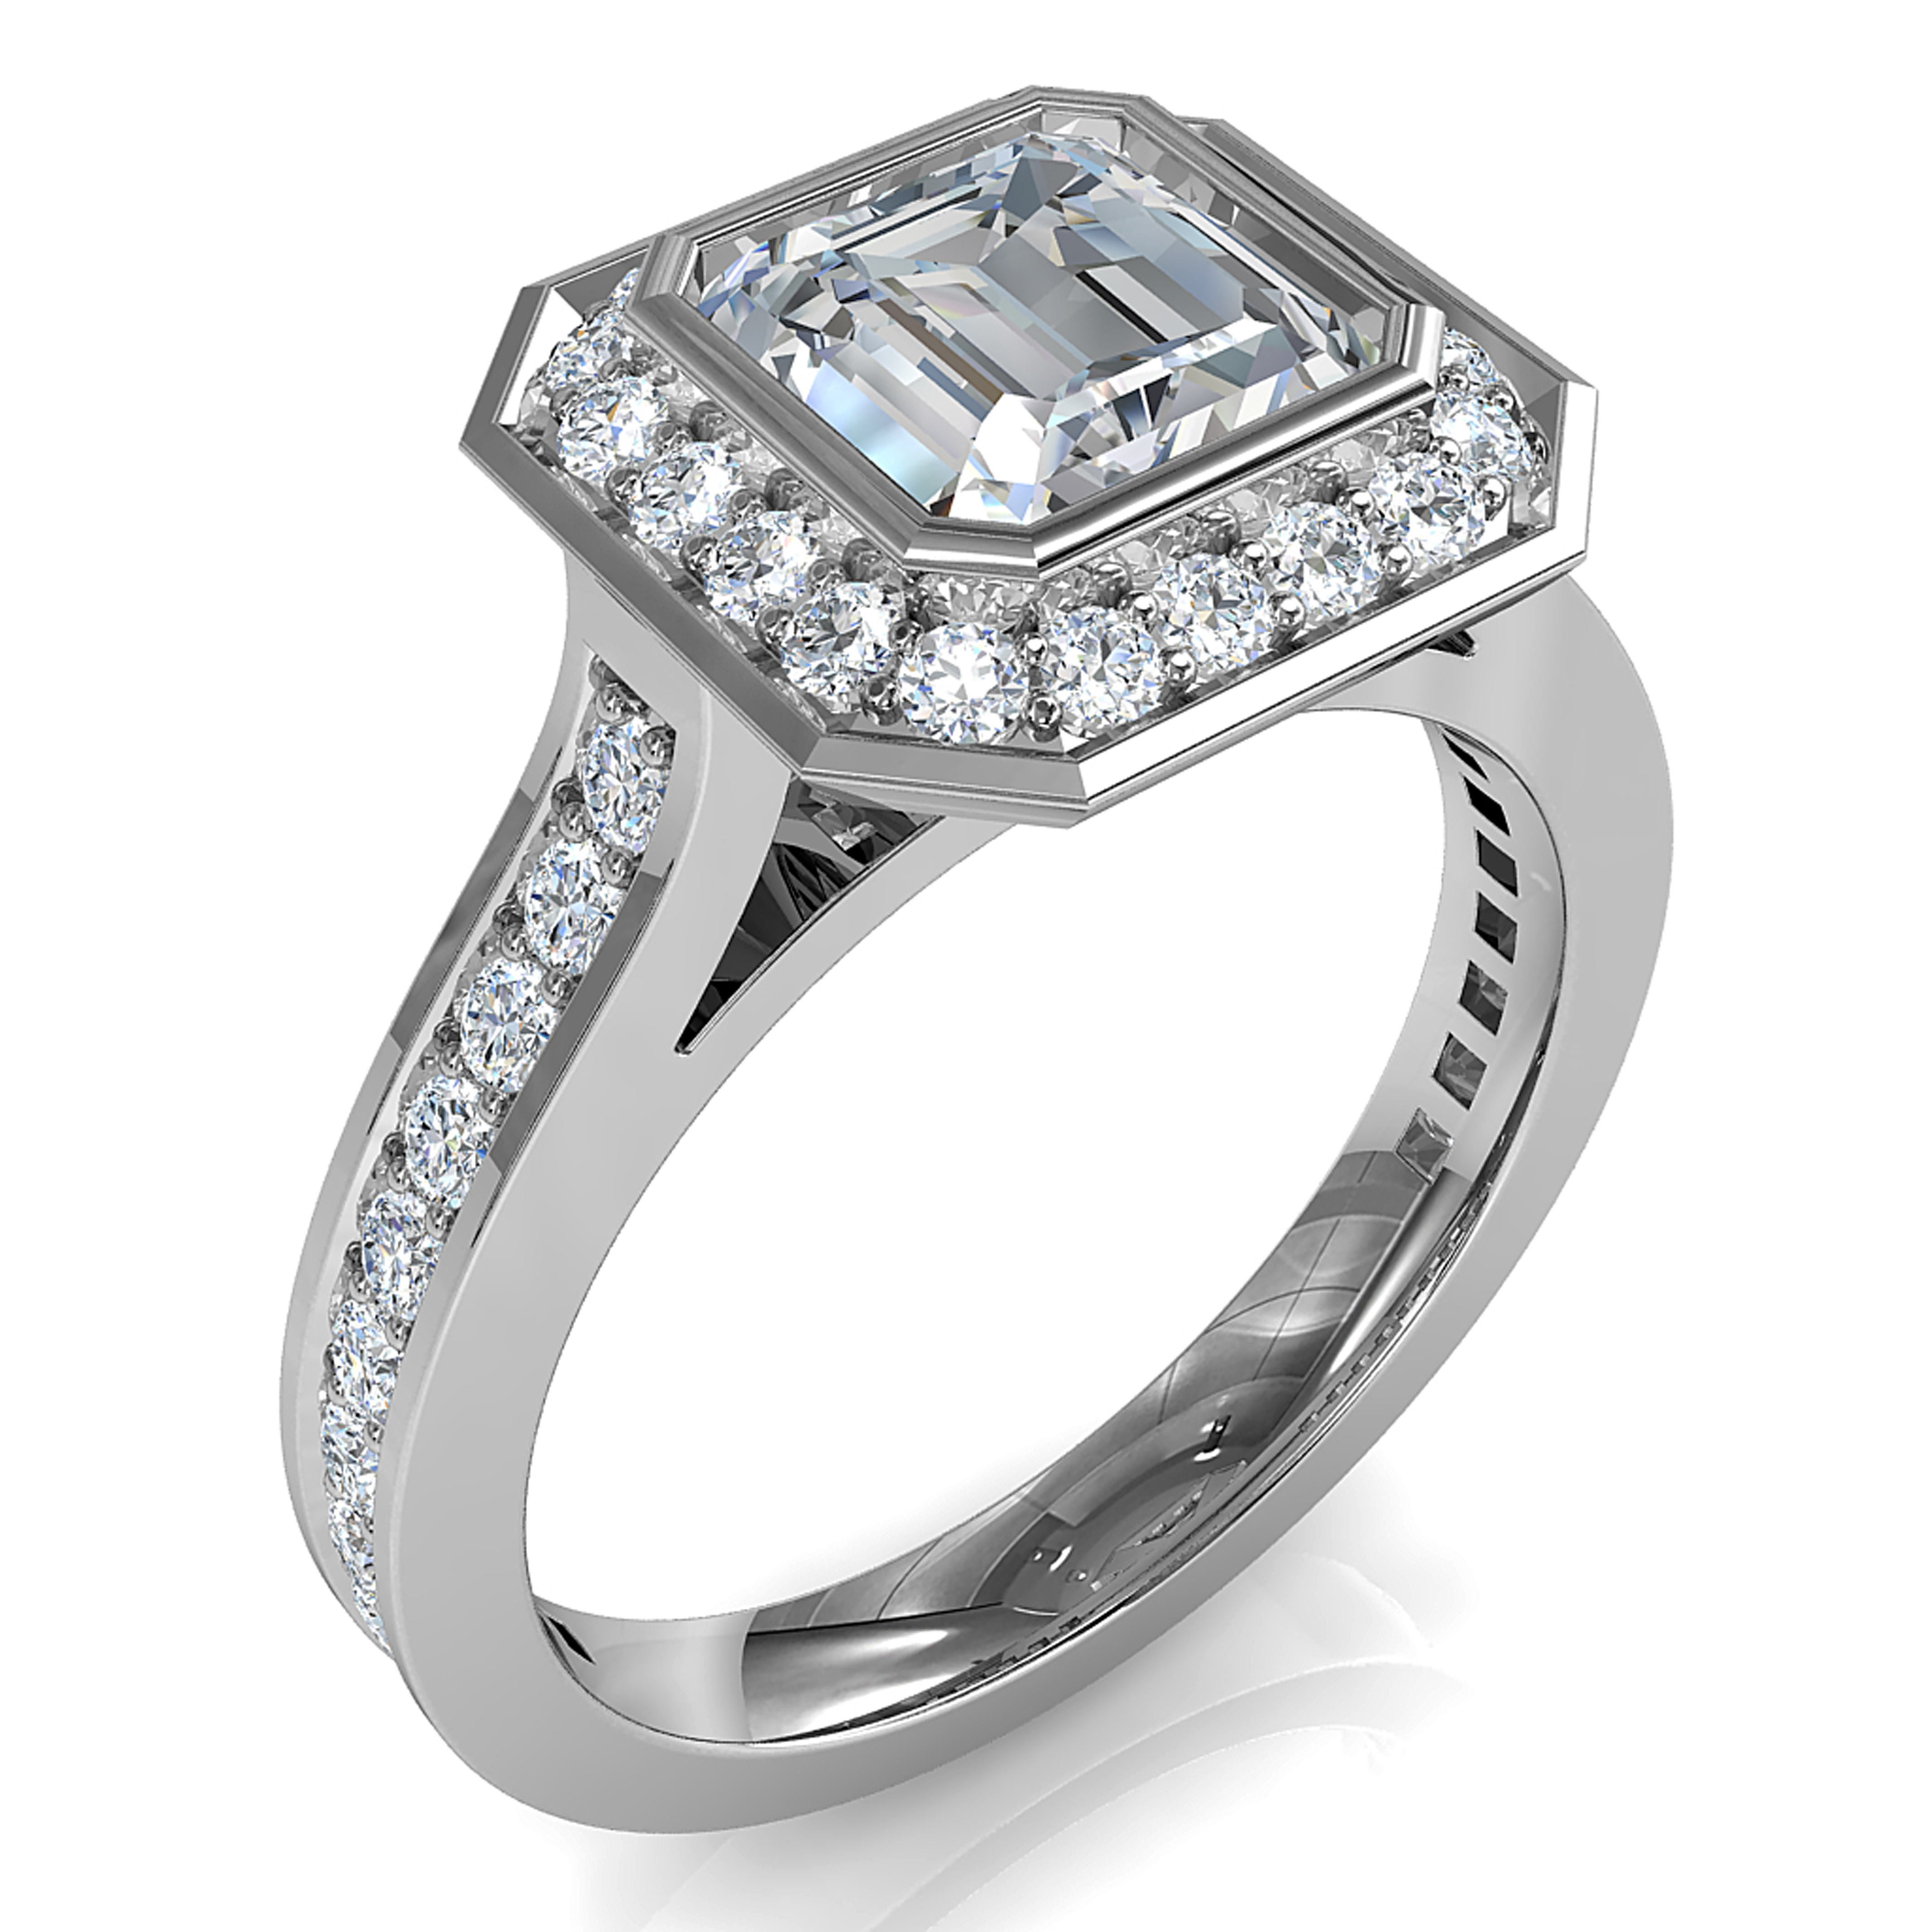 Asscher Cut Halo Diamond Engagement Ring, Bezel Set into a Bead Set Halo and Band.